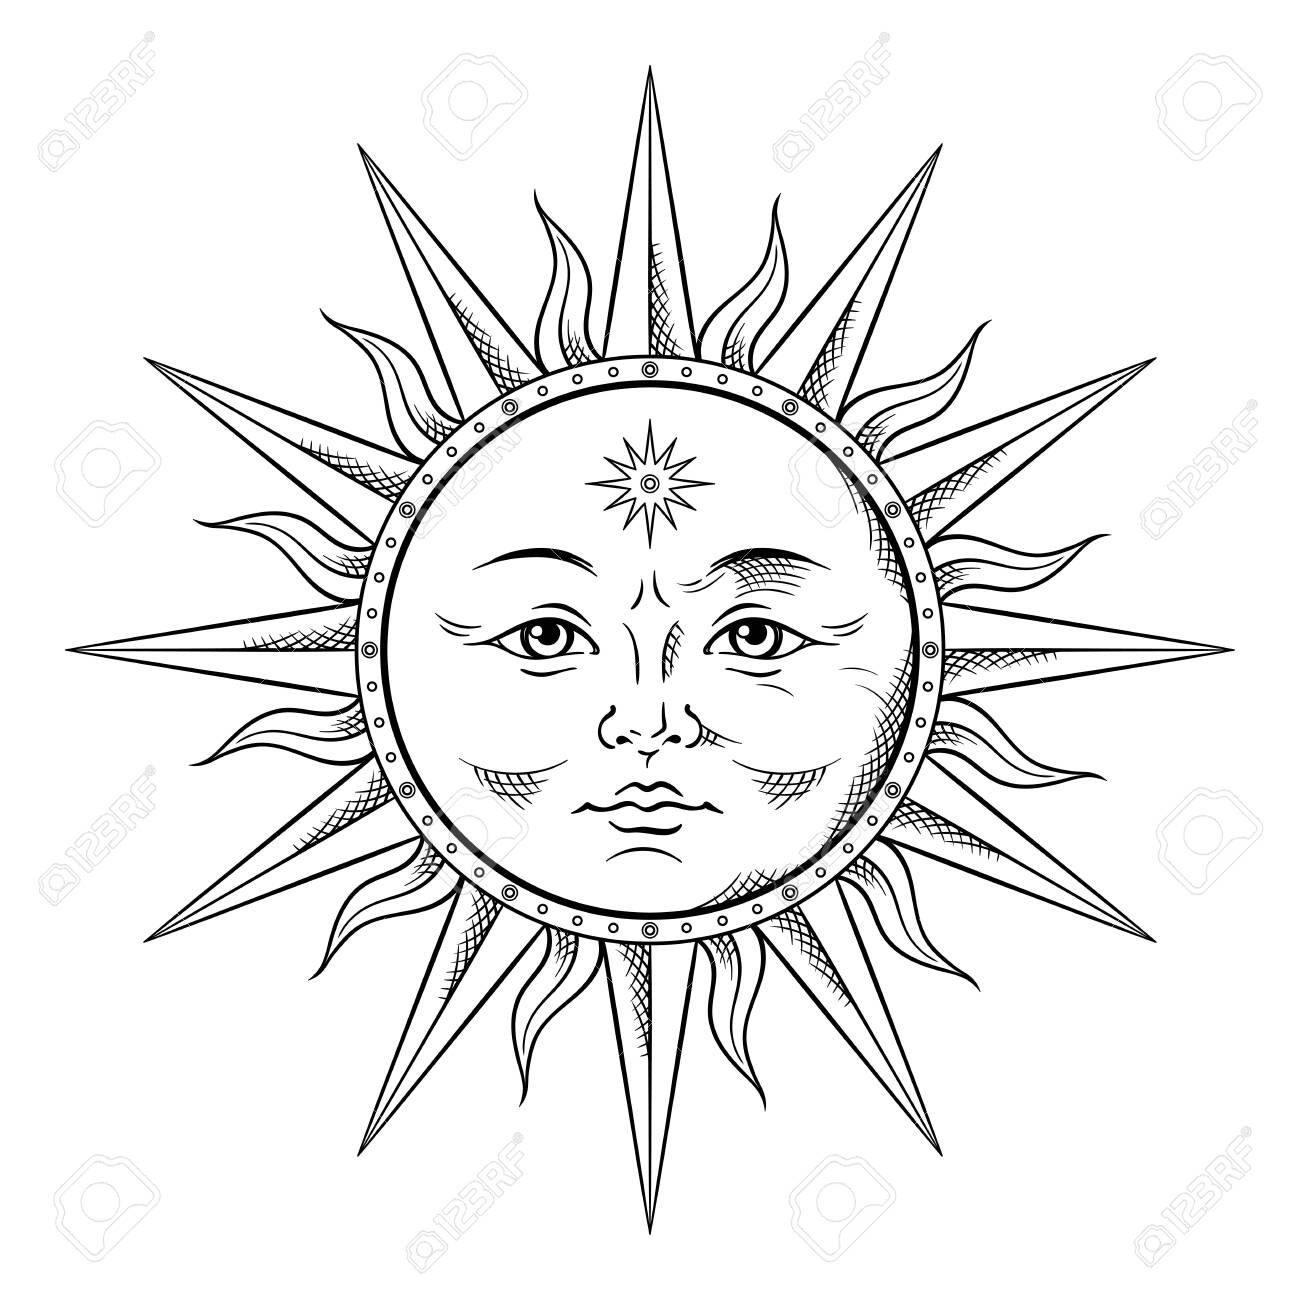 Antique style gold sun hand drawn line art. Boho chic tattoo, poster, altar veil, tapestry or fabric print design vector illustration - 135608610